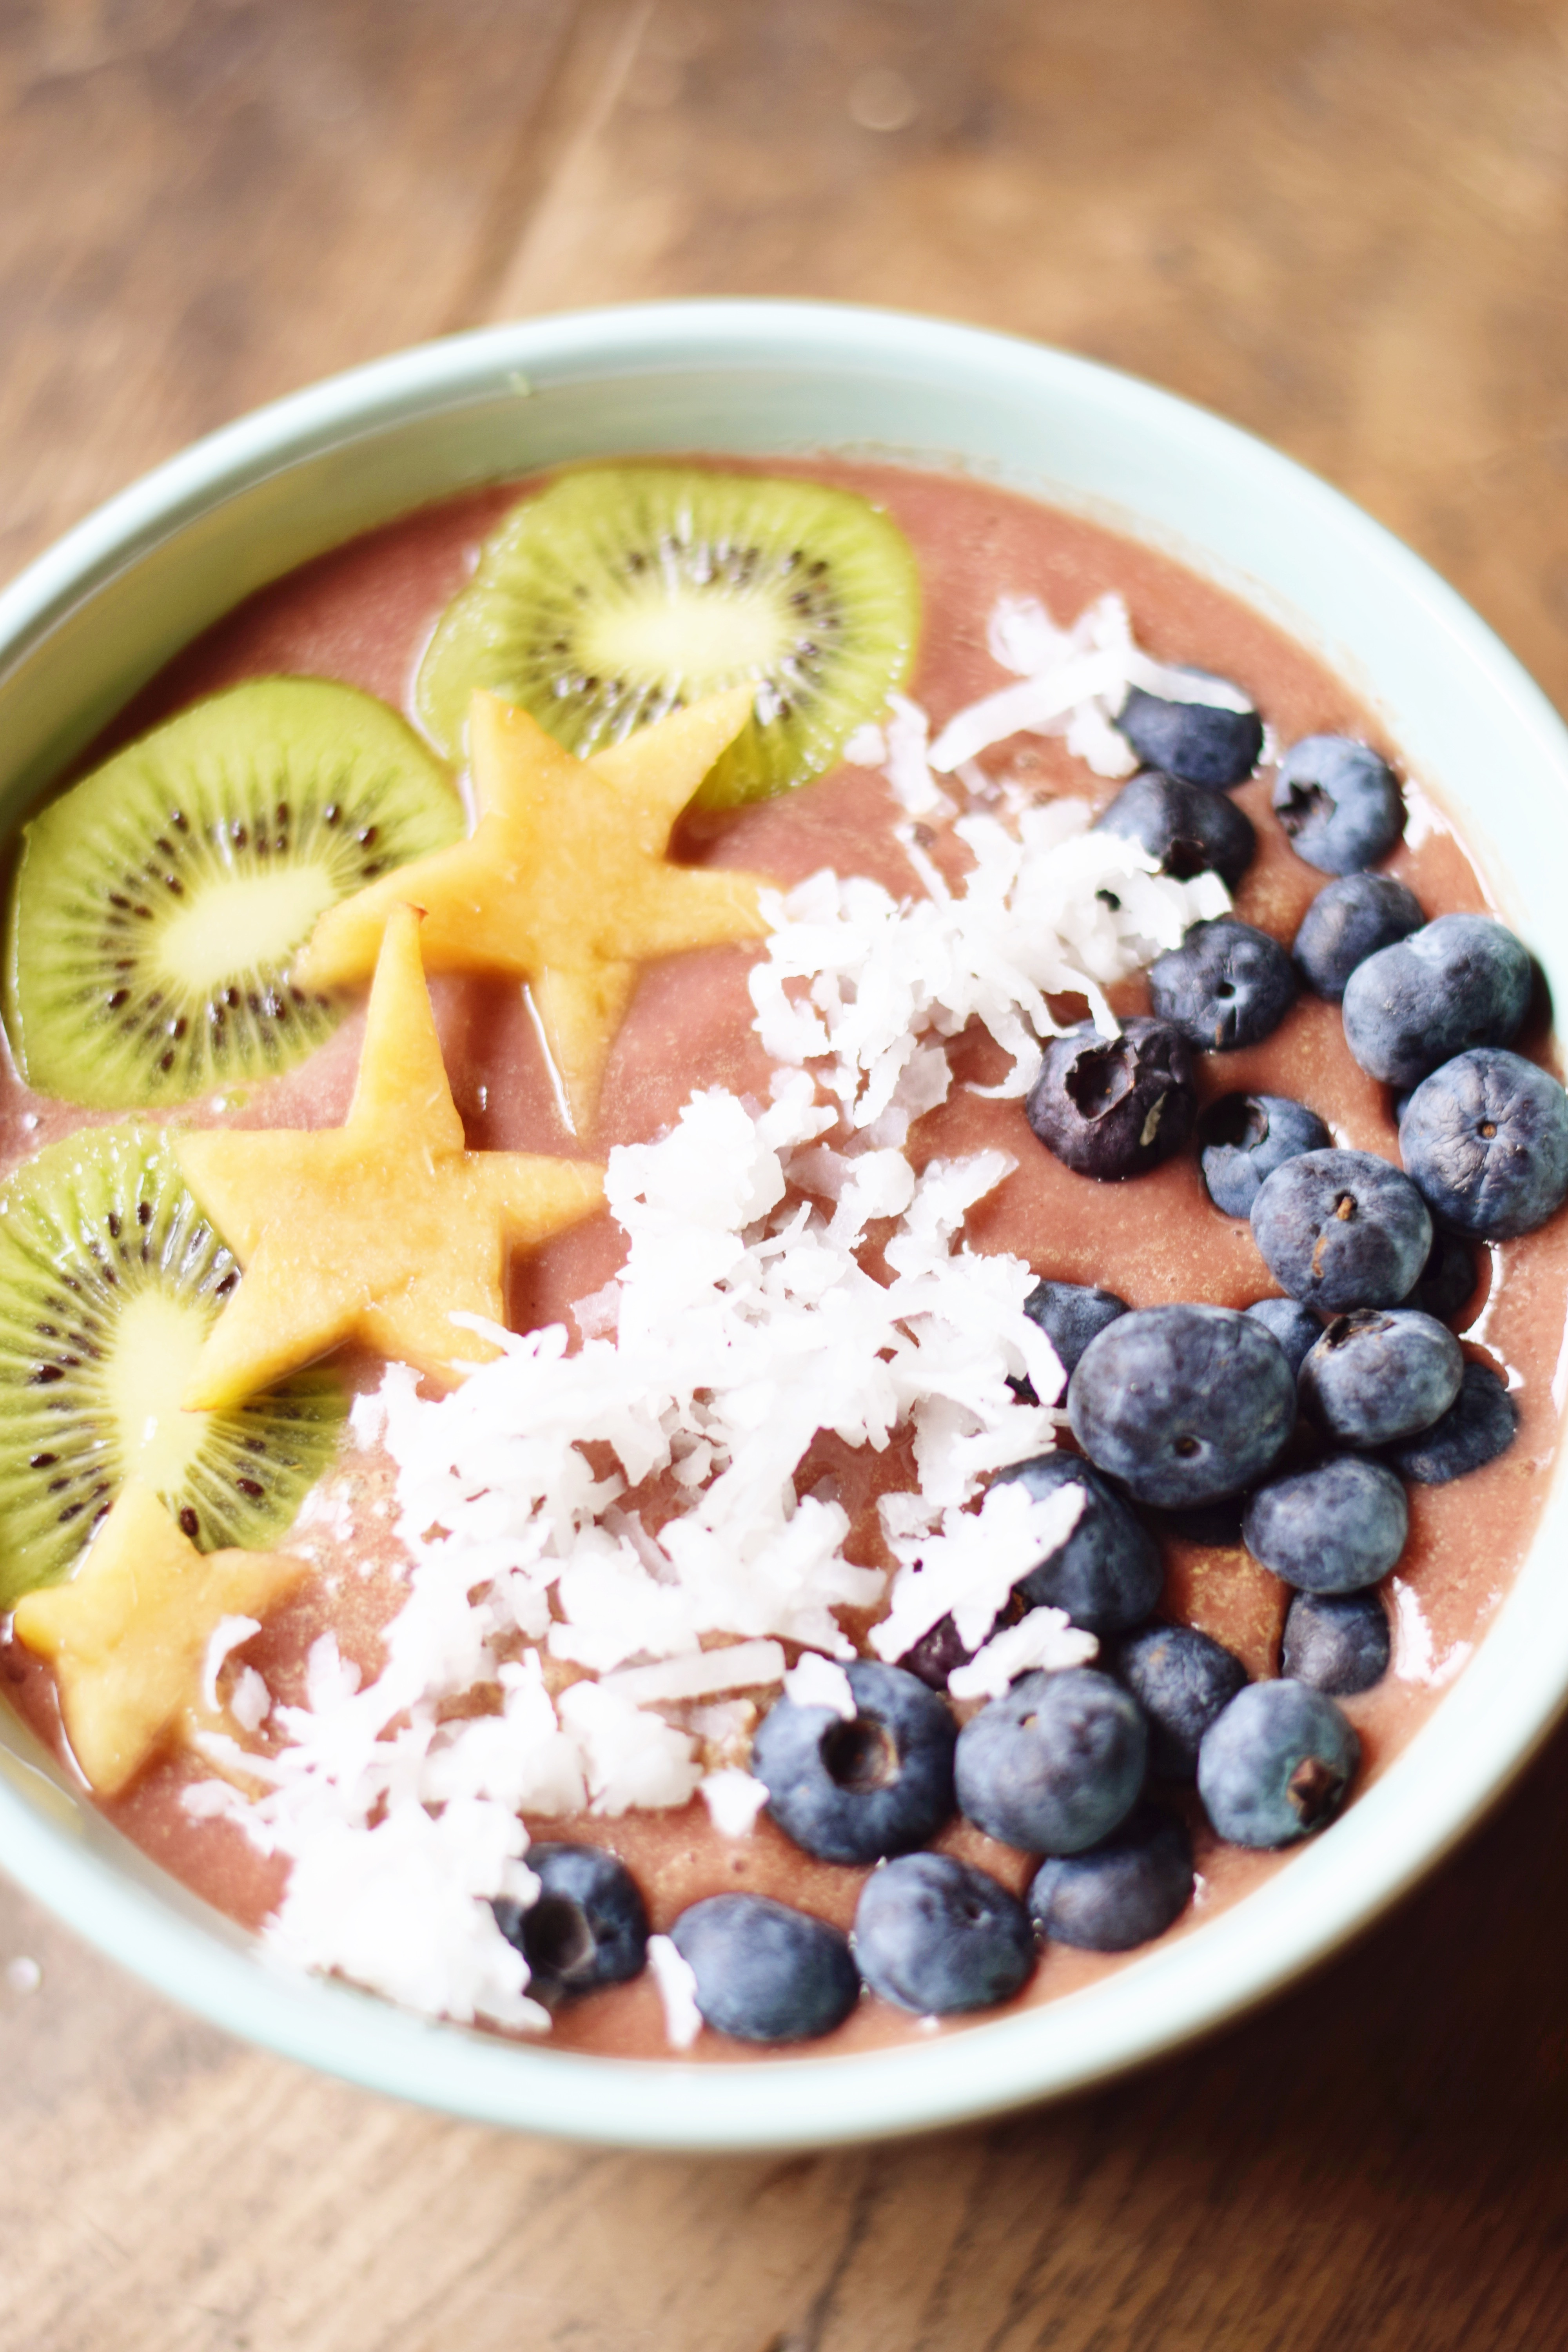 Easy Pineapple Acai Bowl - Acai Bowl Recipe - Easy Acai Bowl - Sambazon Acai Recipe - Acai Bowl Acai Packet - Simple Acai Smoothie Bowl - How To Make Acai Bowls - Hawaii Acai Bowl - Tropical Fruit Smoothie Bowl - Communikait by Kait Hanson